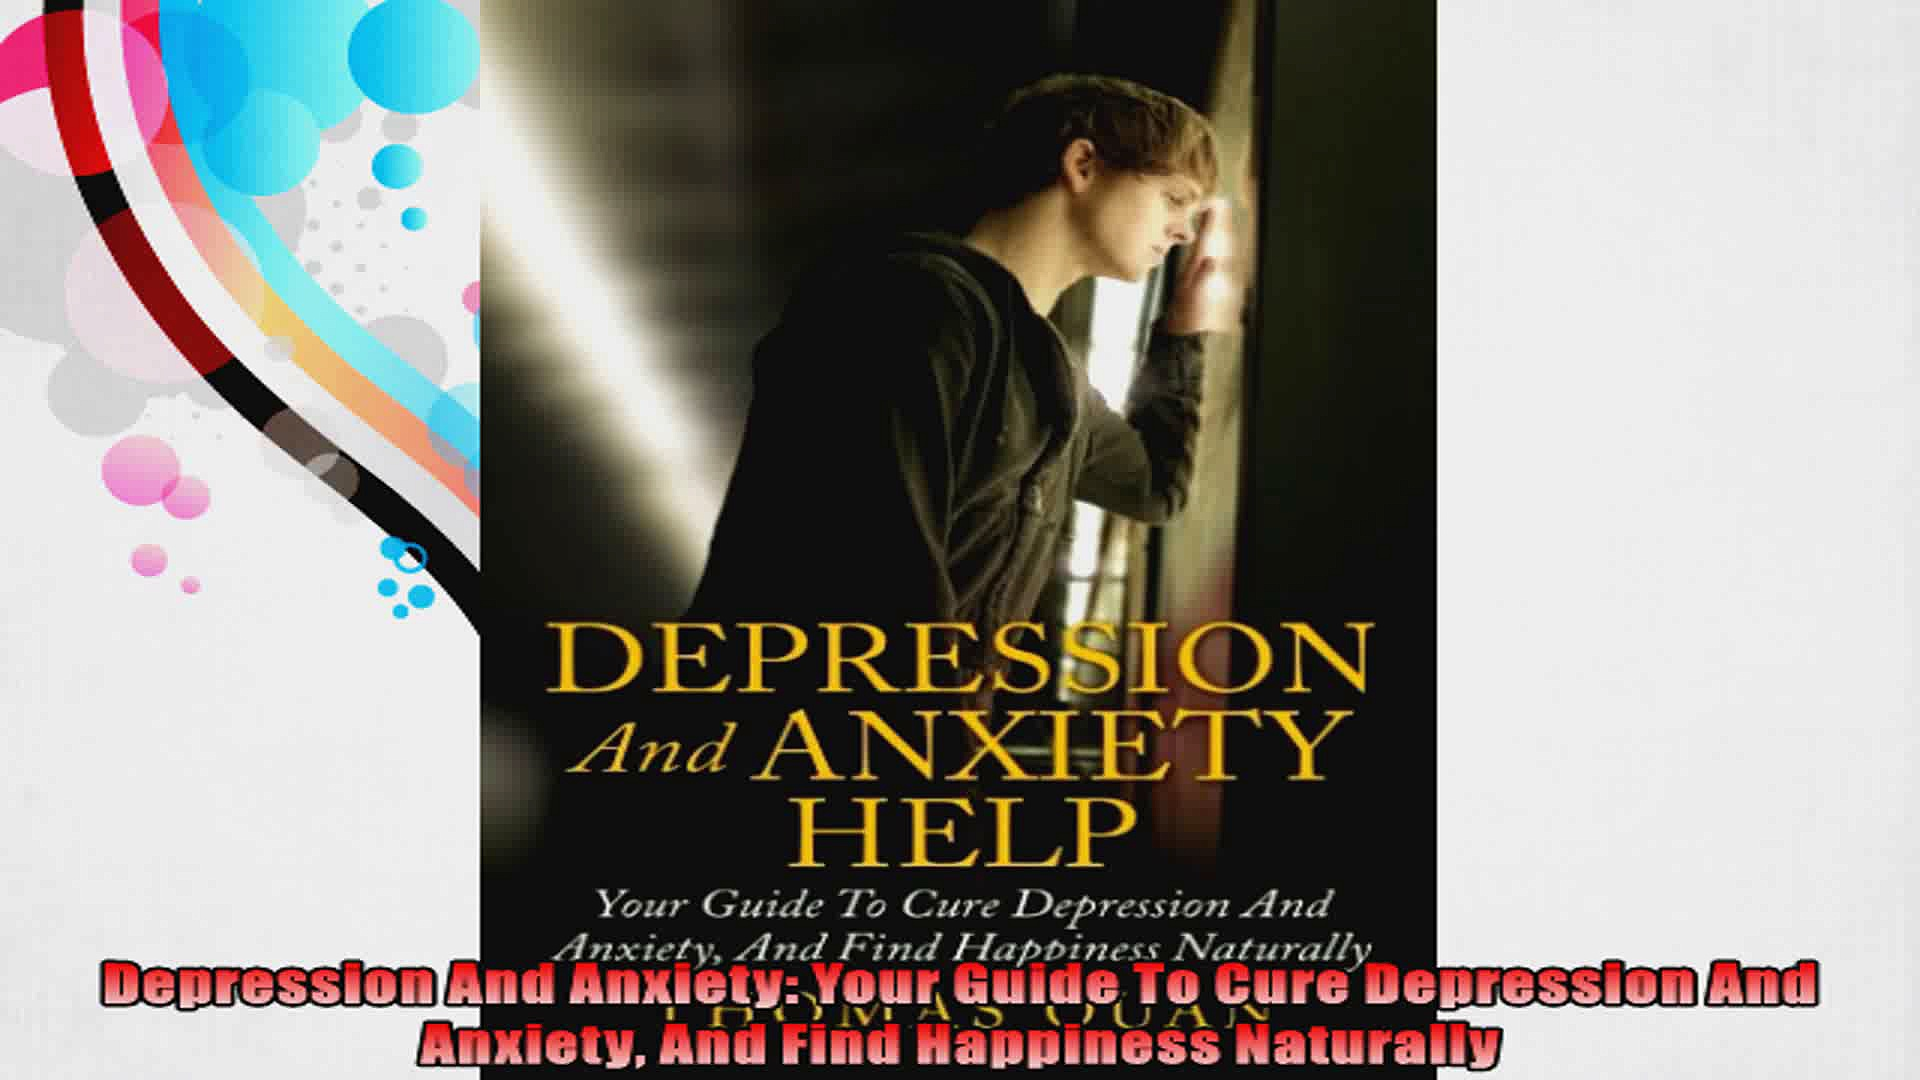 Depression And Anxiety Your Guide To Cure Depression And Anxiety And Find Happiness